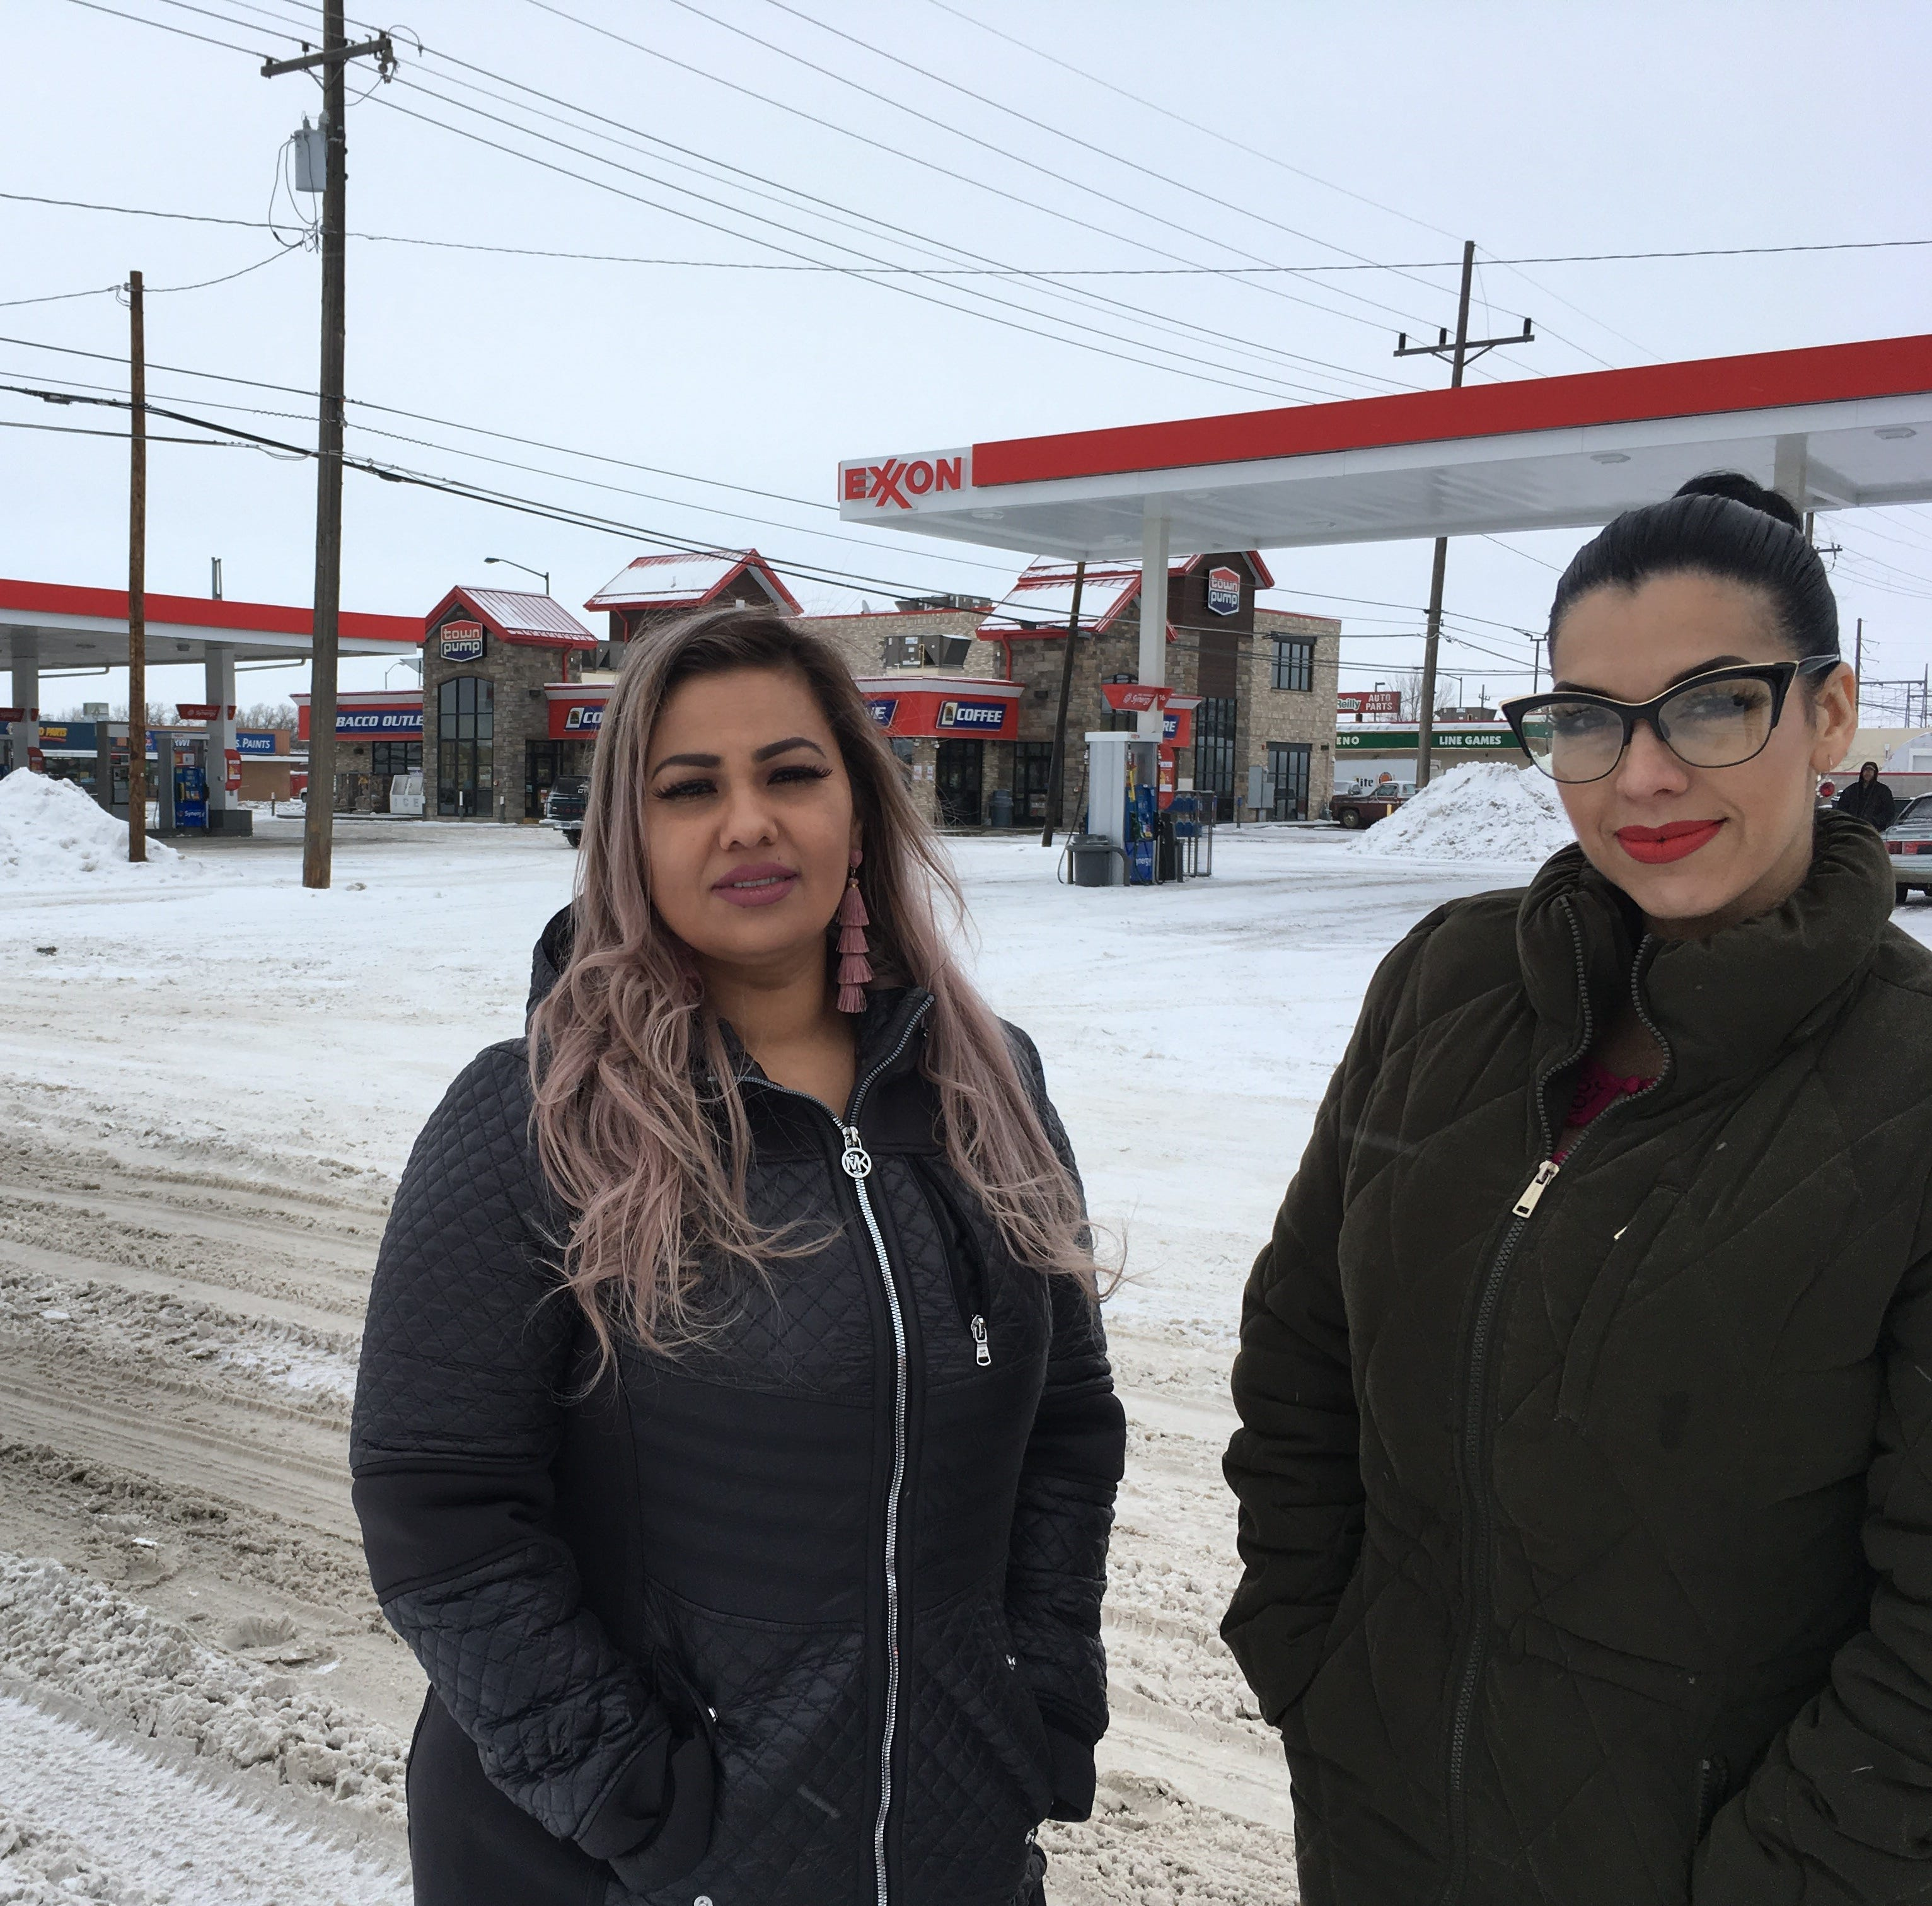 ACLU files lawsuit for two women, one an El Paso native, detained by Montana CBP agent